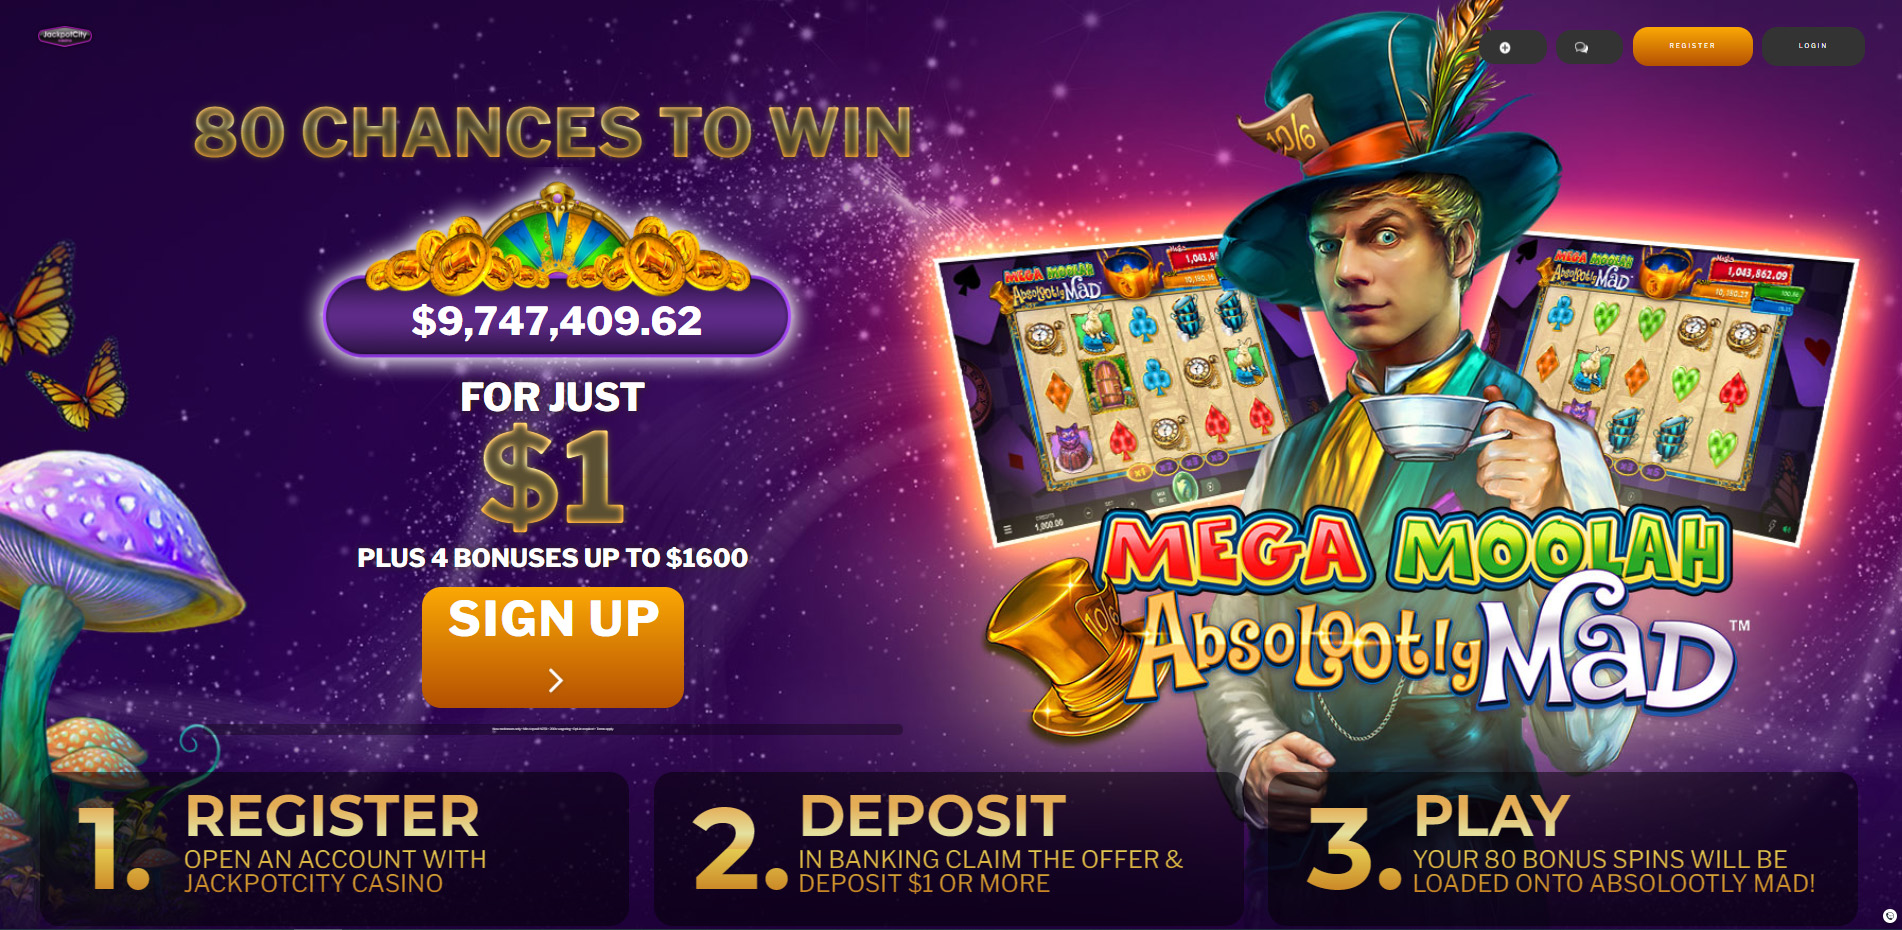 Exclusive JackpotCity offer